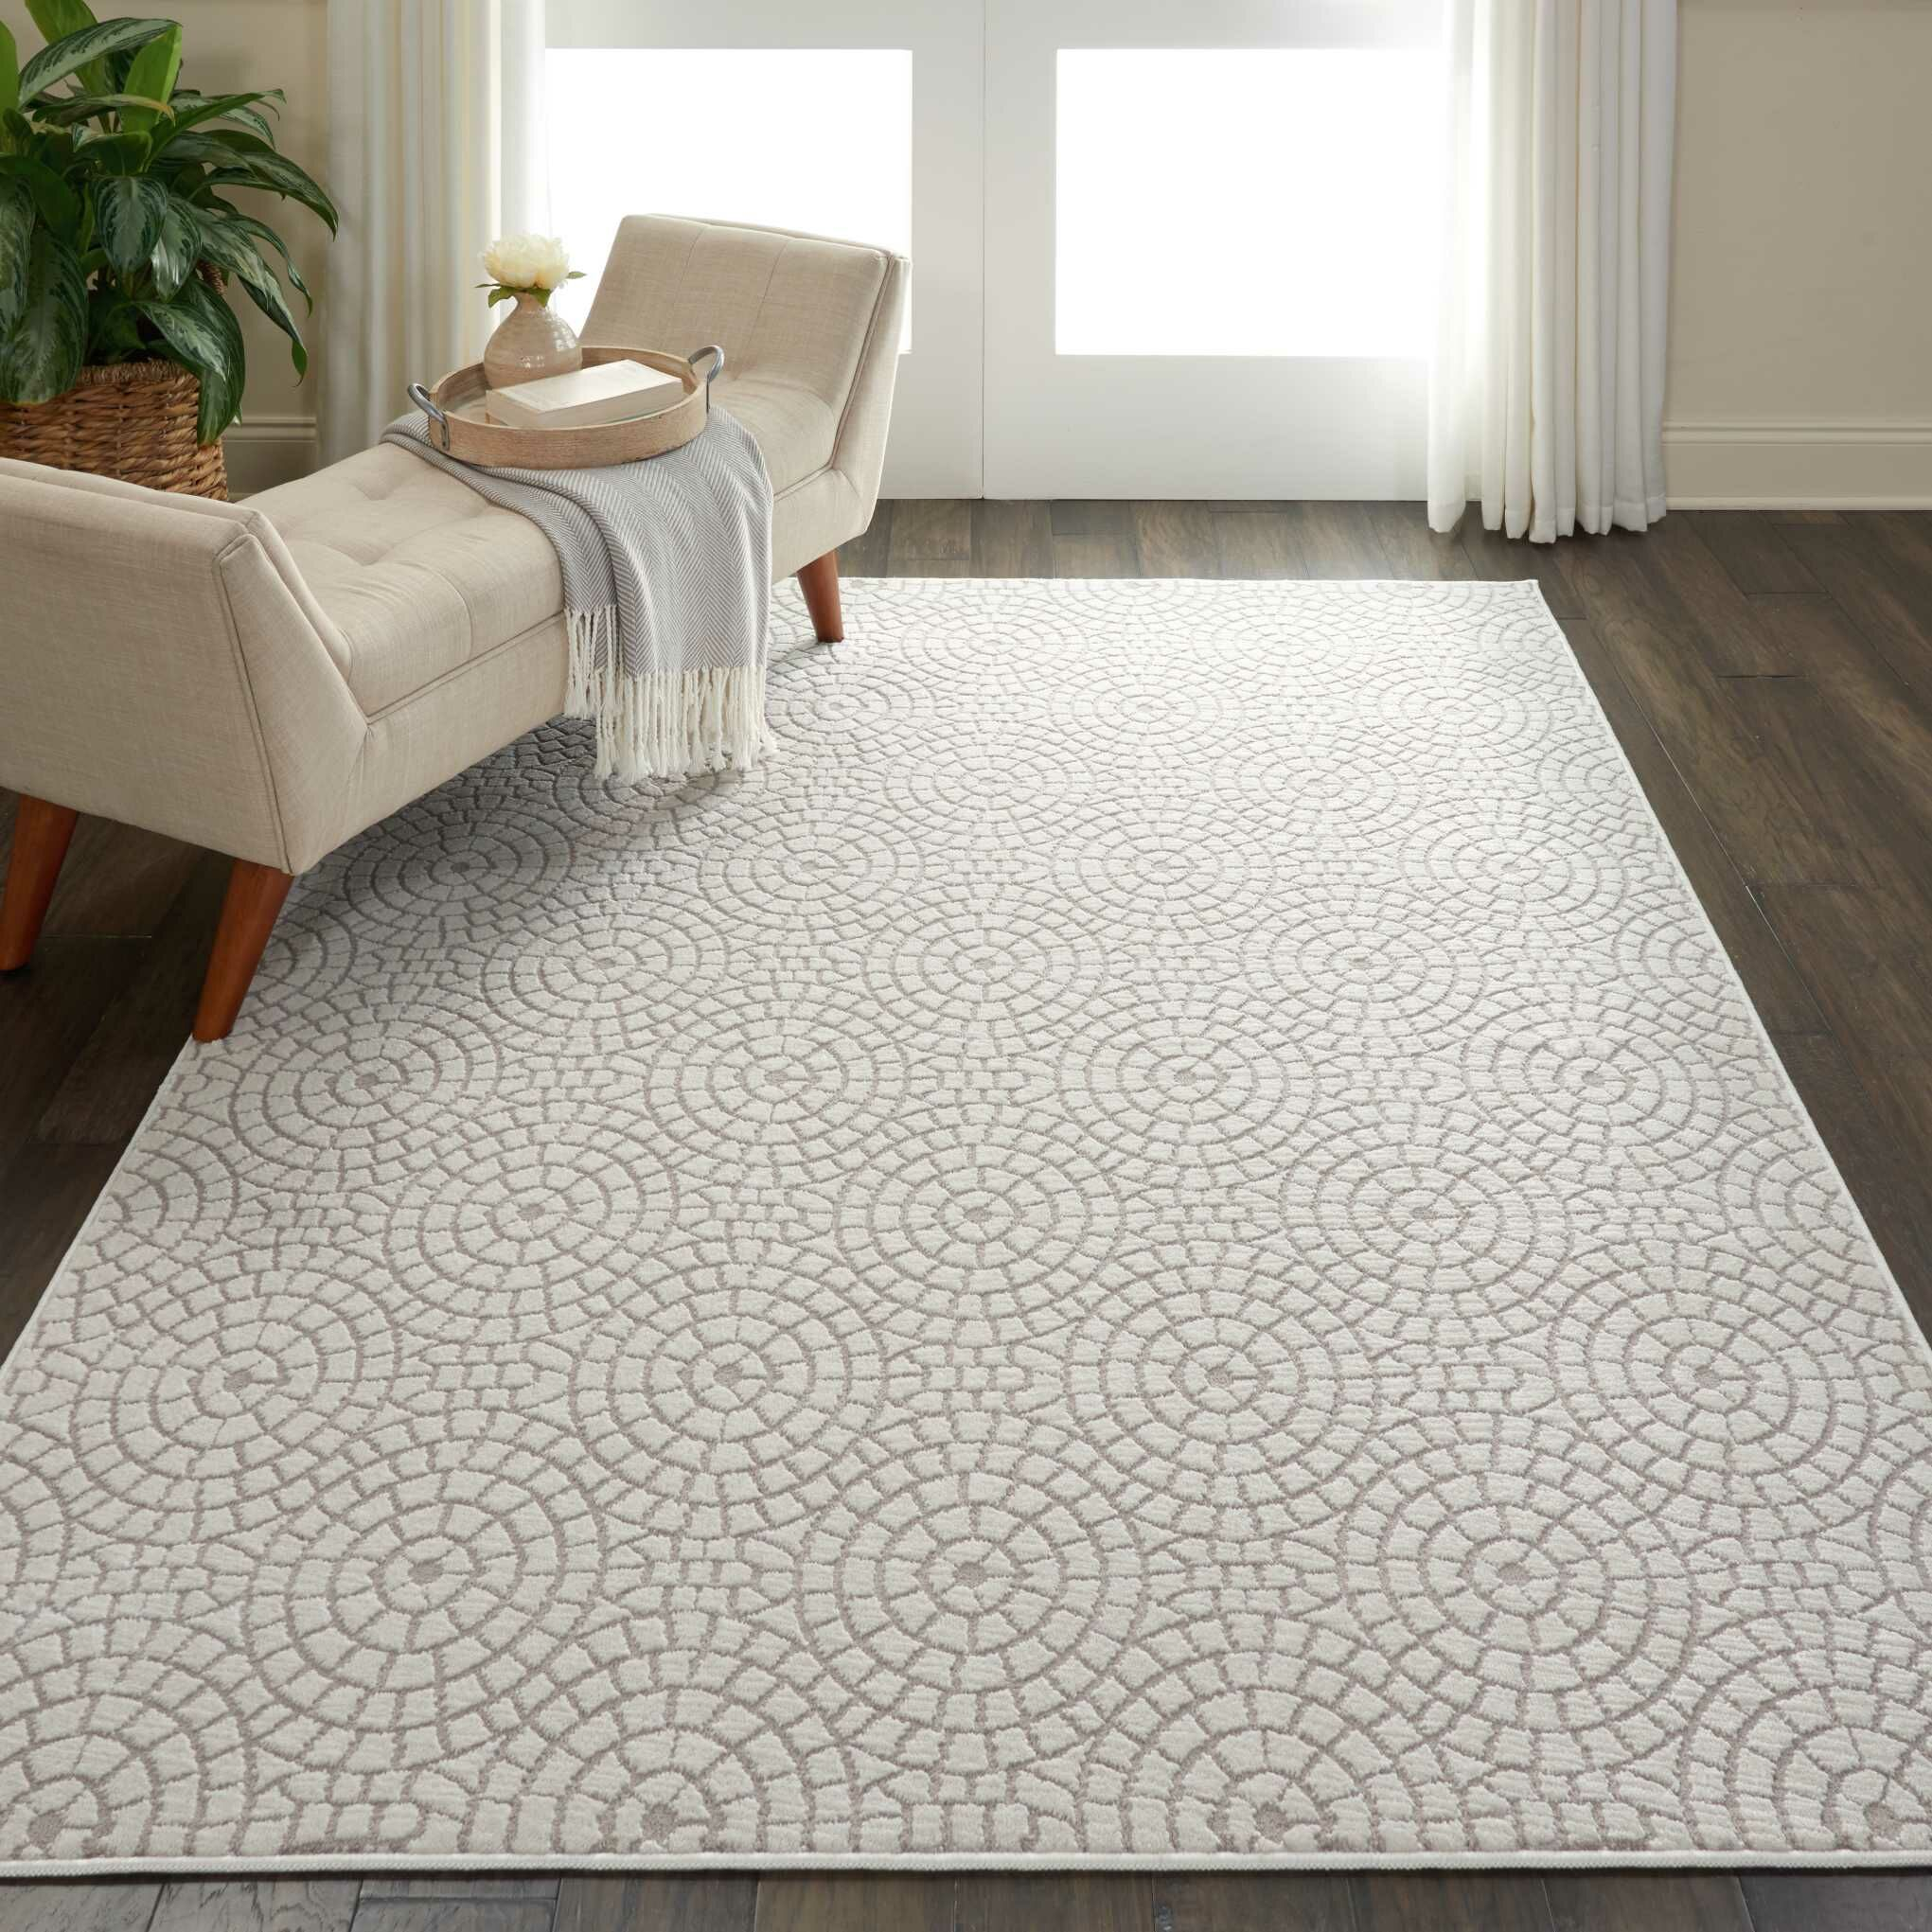 Burford Geometric Cream Area Rug Rug Size: Rectangle 4' x 6'